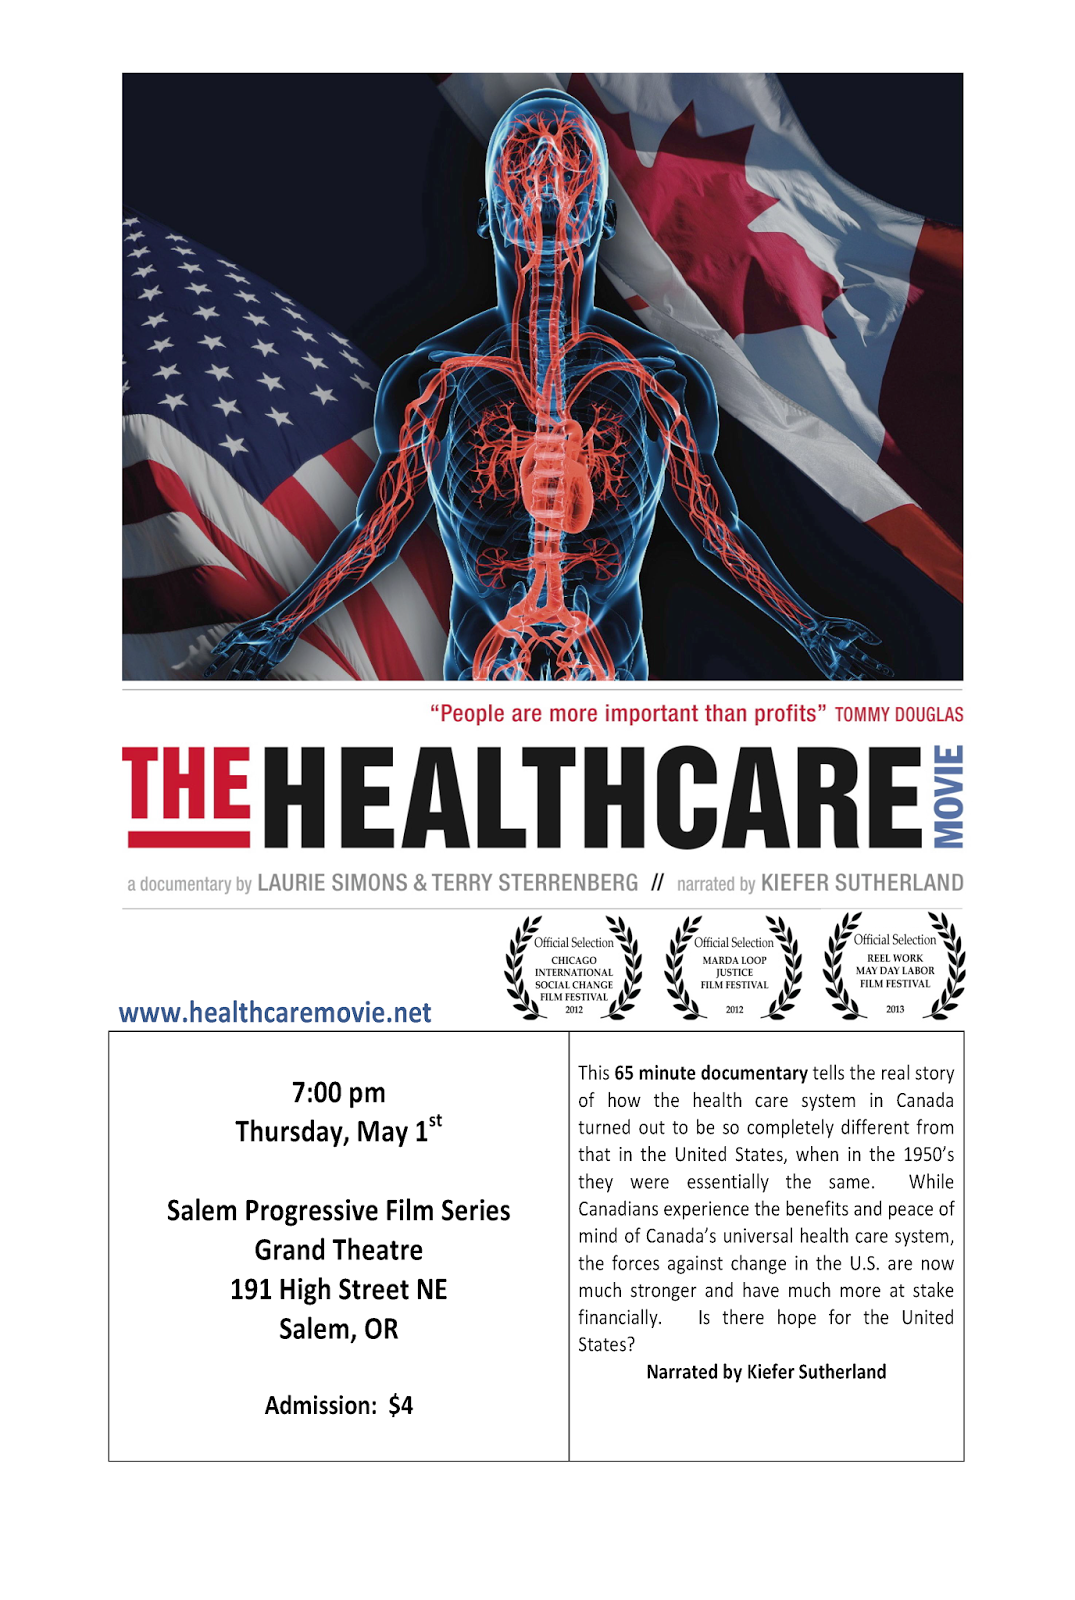 http://thehealthcaremovie.net/home/